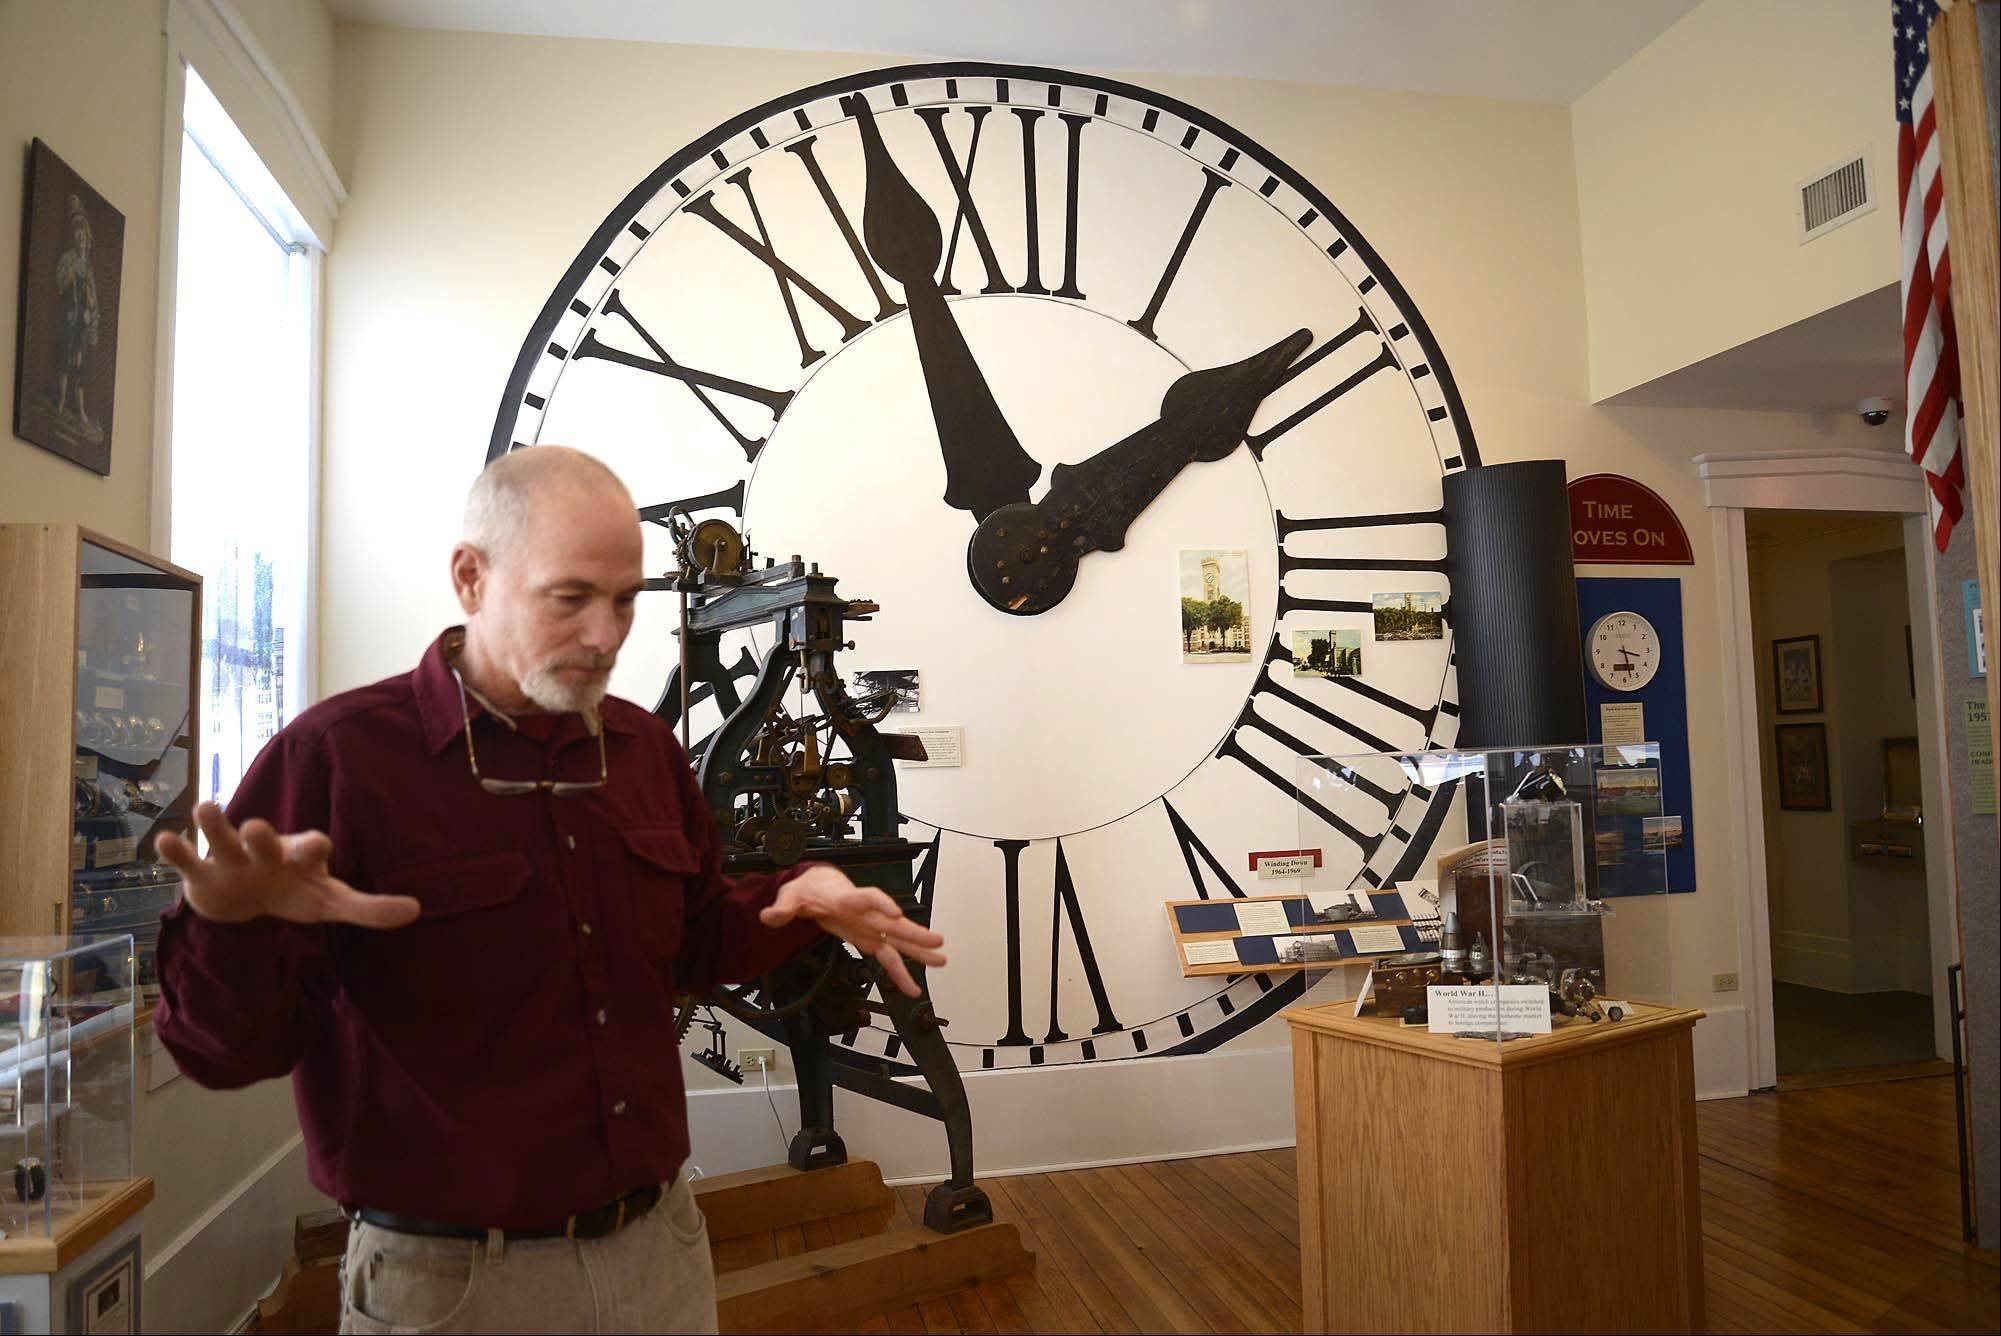 As president of the Elgin Area Historical Society, George Rowe knows a lot about his hometown, and he hears a lot about the artifacts that are housed in the Elgin History Museum. He says one of the clock hands on the wall behind him was originally on the clock tower of the Elgin Watch Company, and was a landmark for decades. The company shut down after more than 100 years and the tower was torn down. George says before he became professionally involved in Elgin history, he remembers seeing the hands mounted on a local garage as decoration.